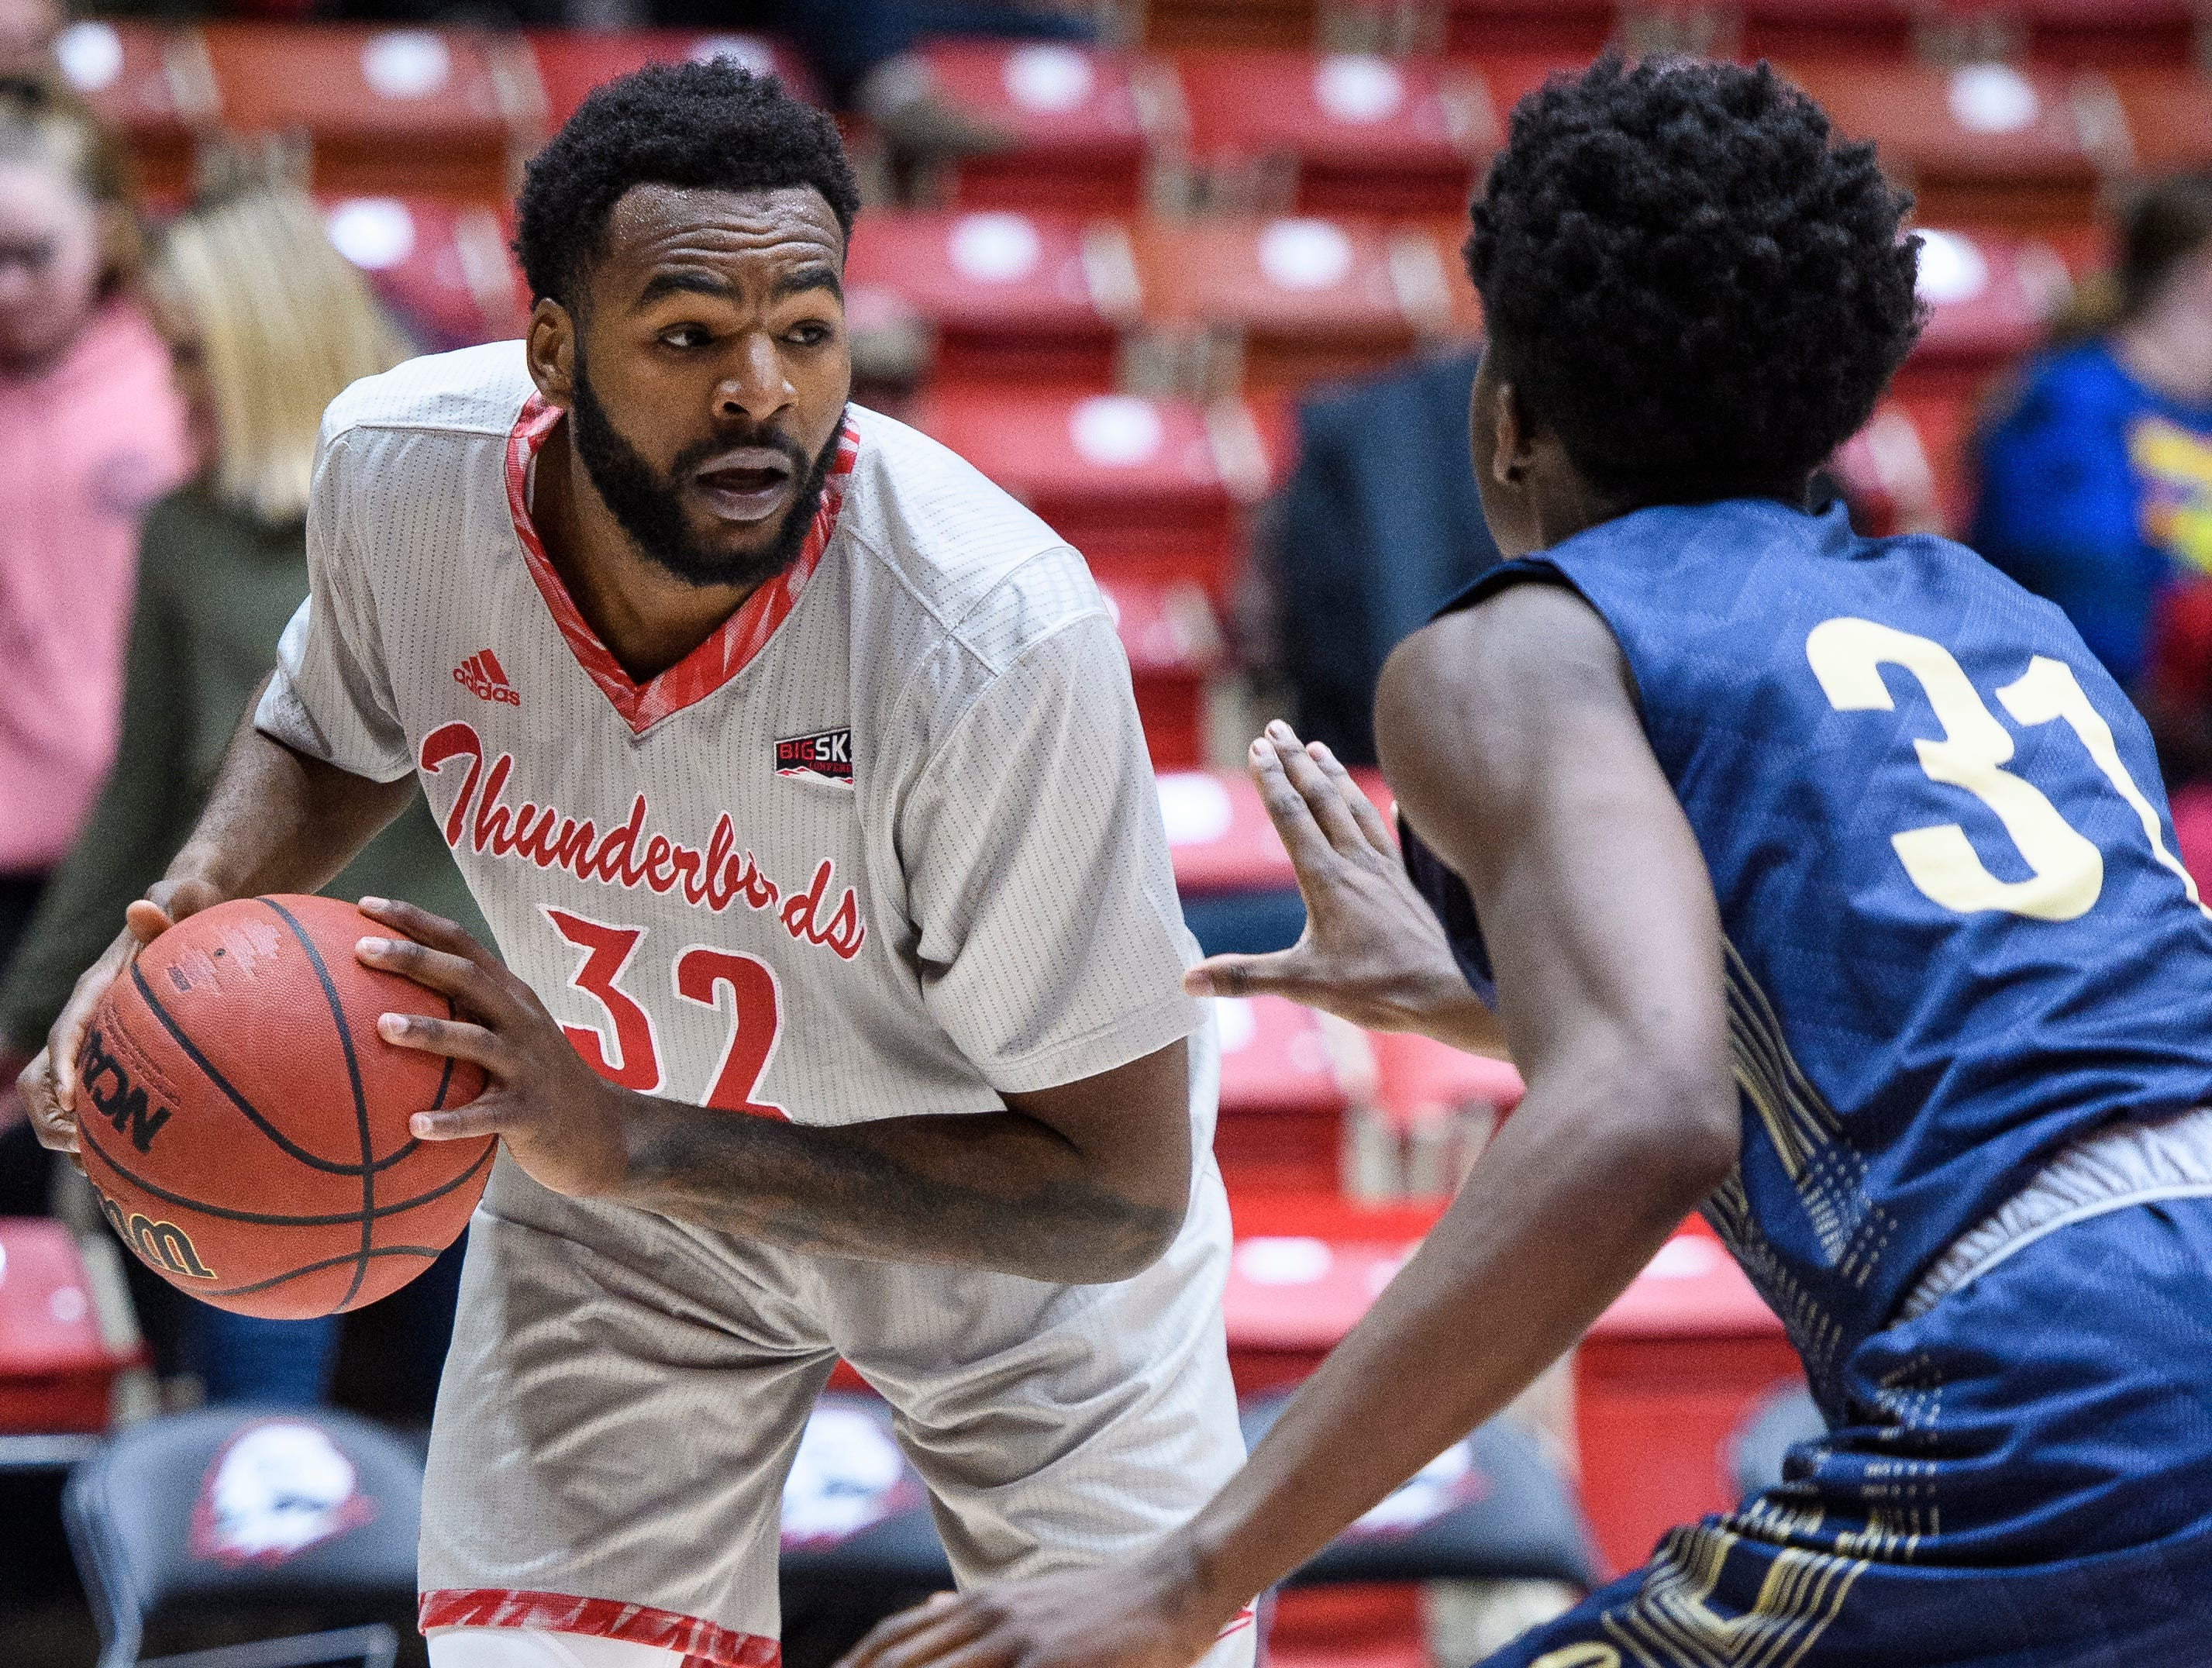 Southern Utah University junior Andre Adams (32) stares down Montana State University sophomore Devin Kirby (31) in the America First Event Center Saturday, December 29, 2018. SUU lost, 92-62.